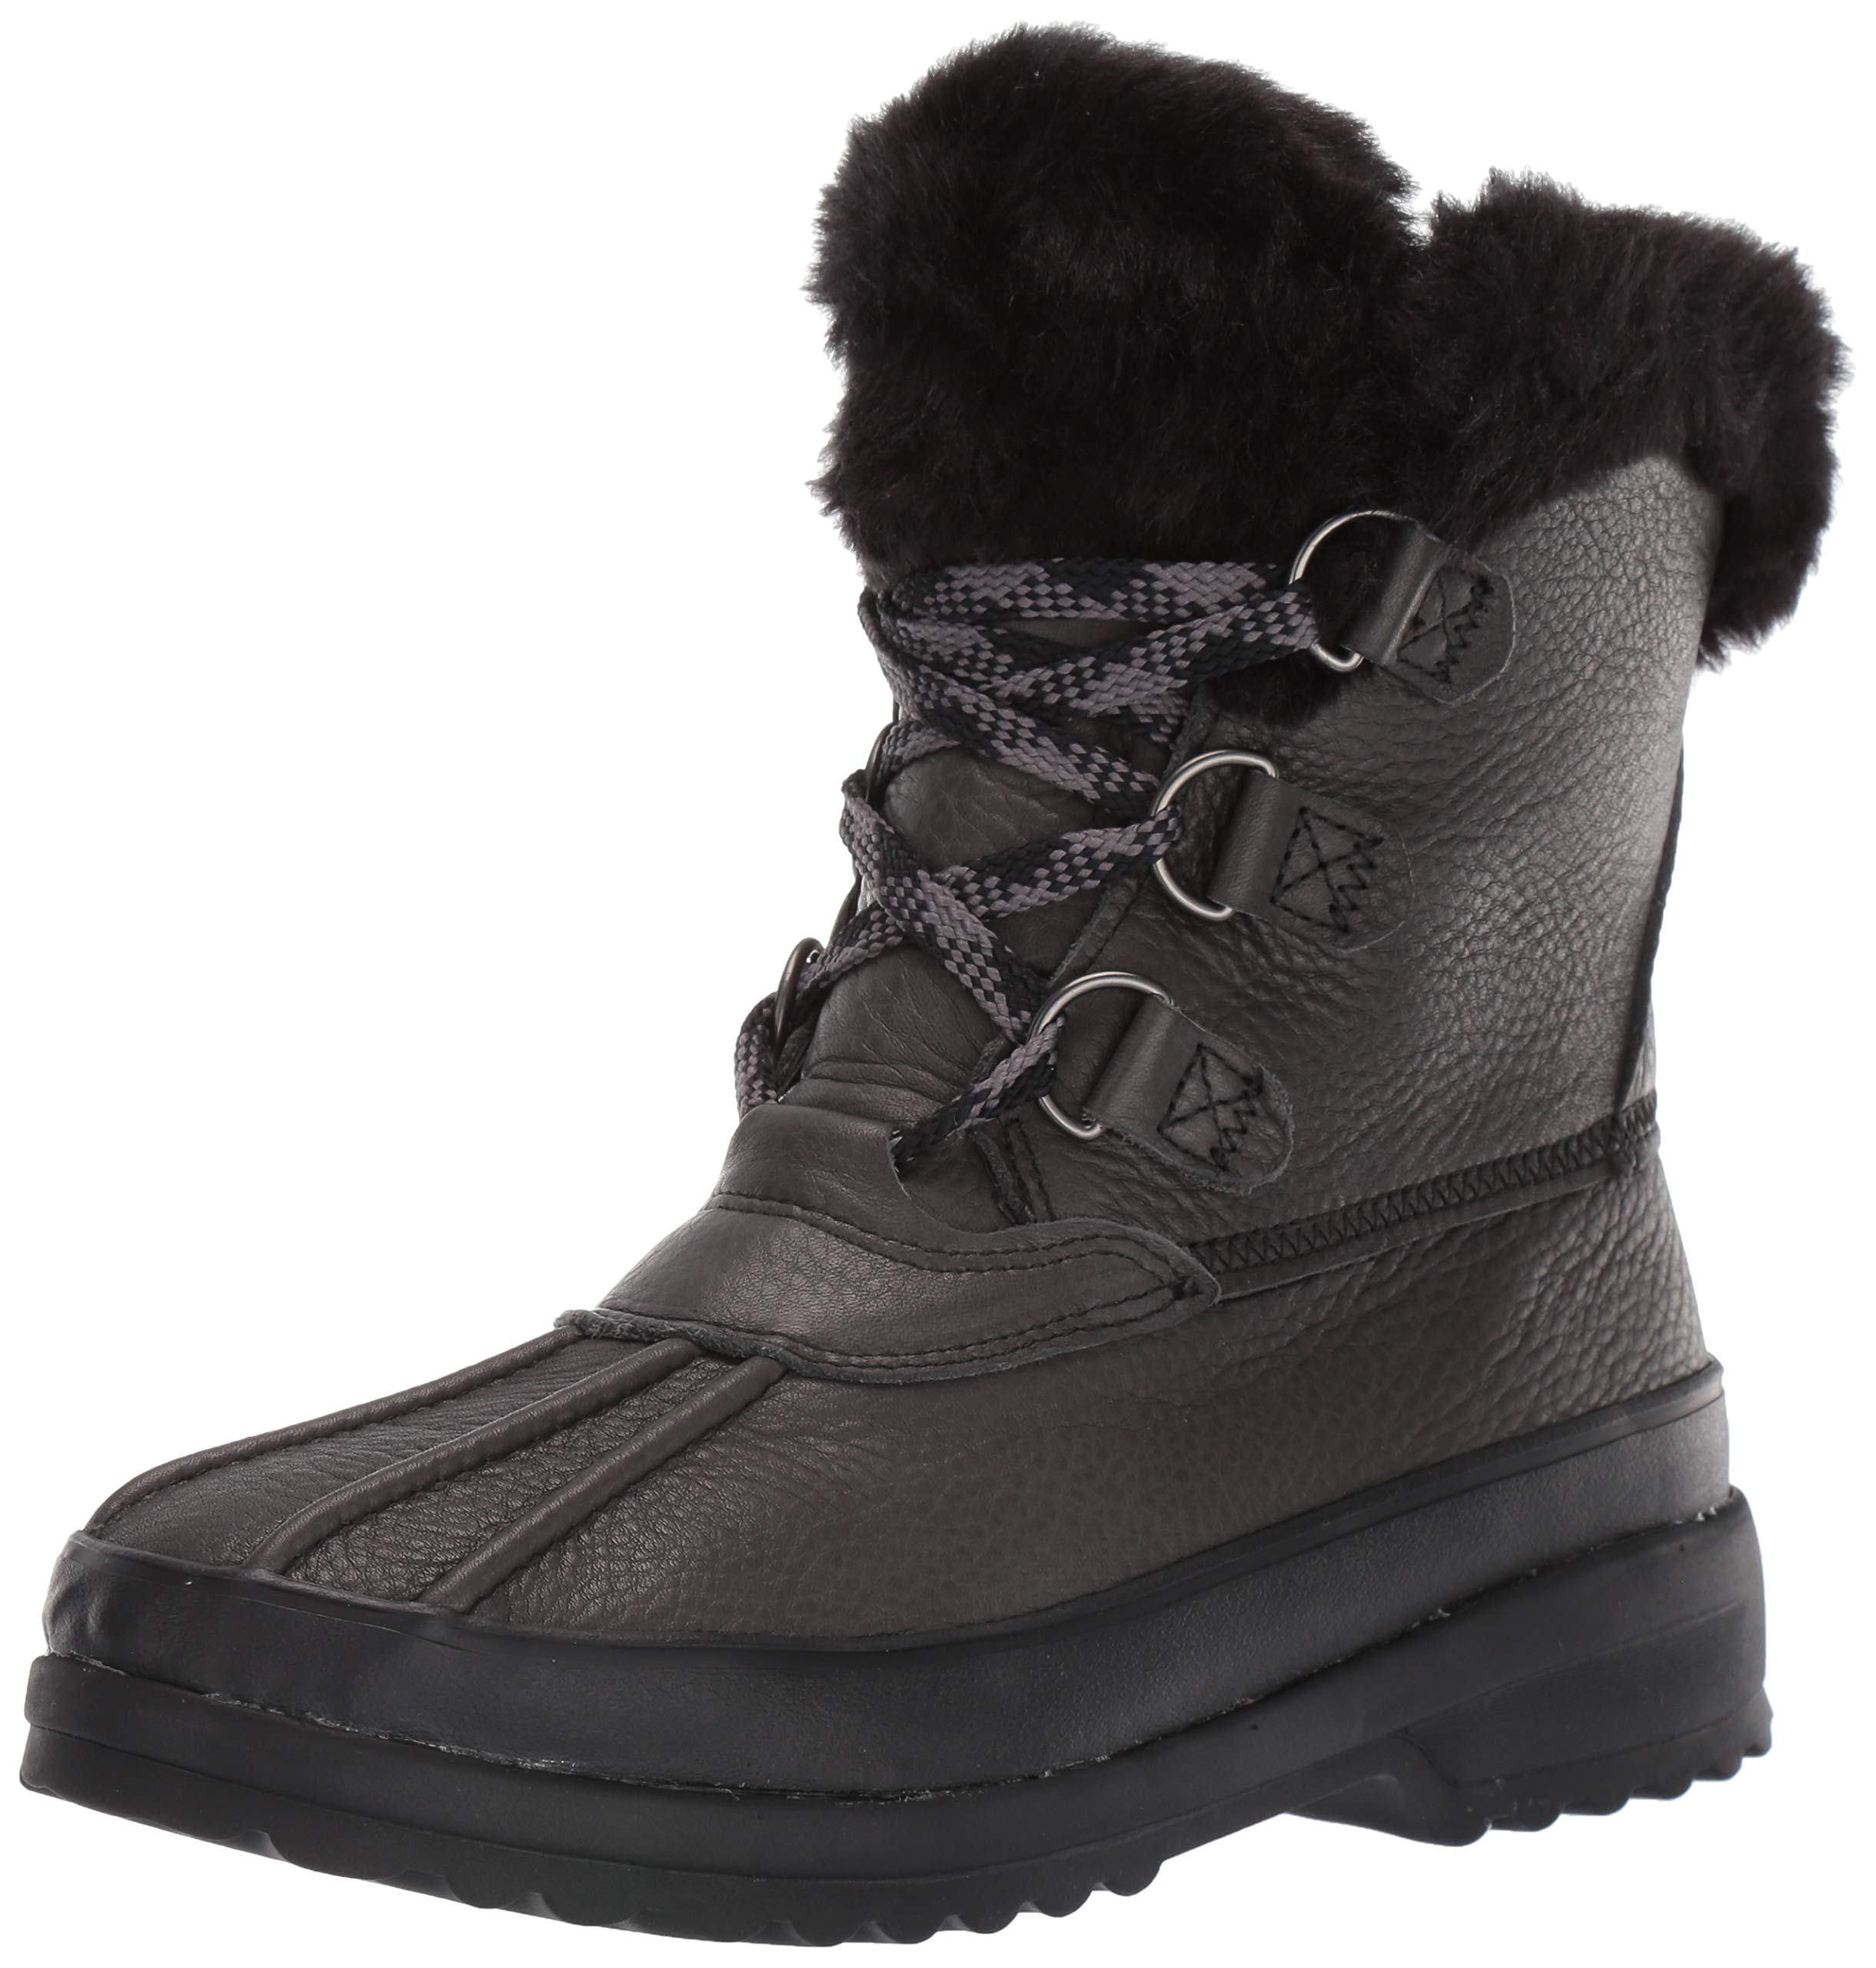 Sperry Top-Sider Women's Maritime Winter Boot Leather